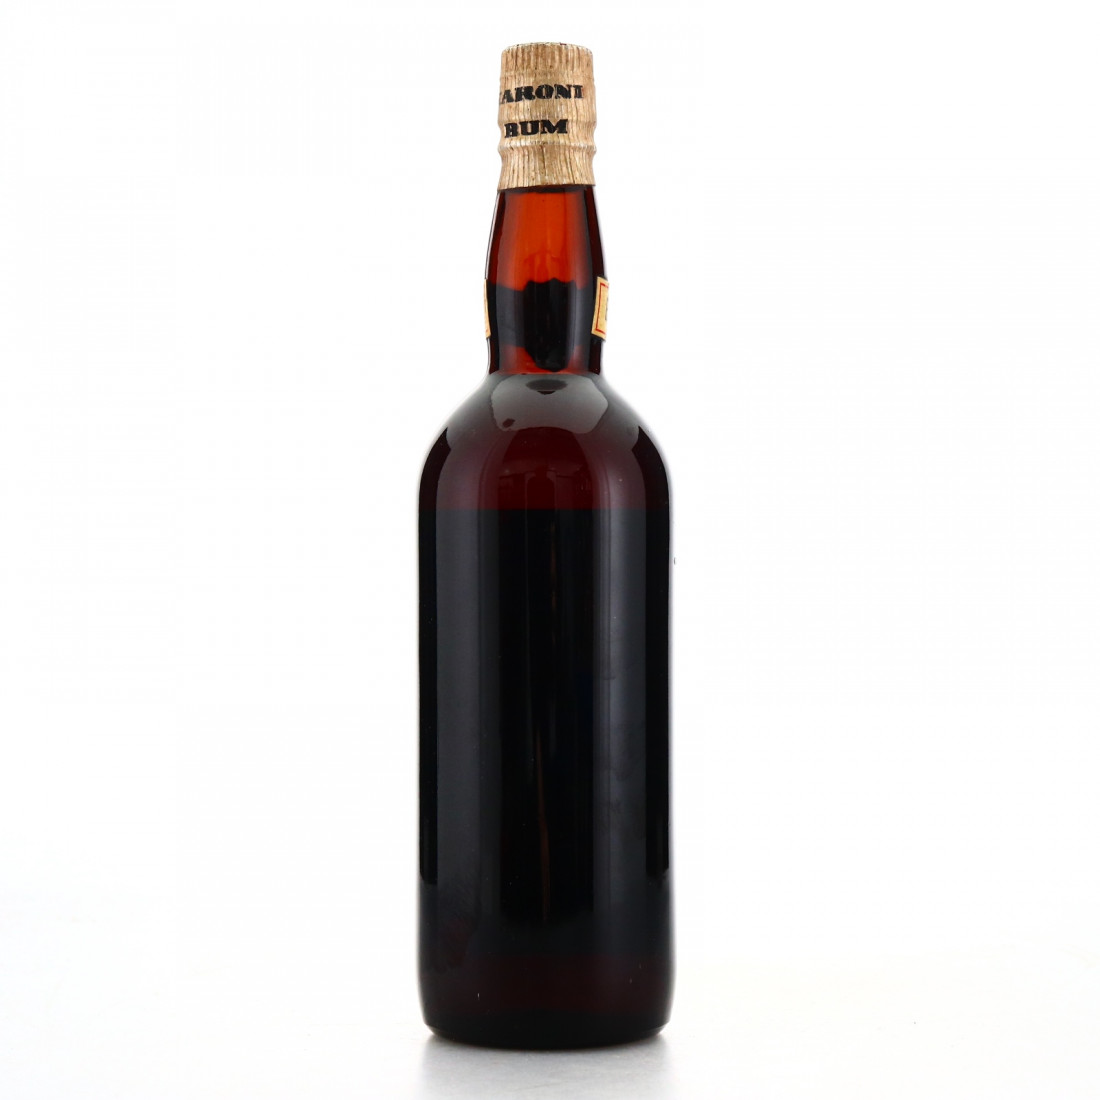 Caroni Navy Rum Tate and Lyle 90 Proof 1960s